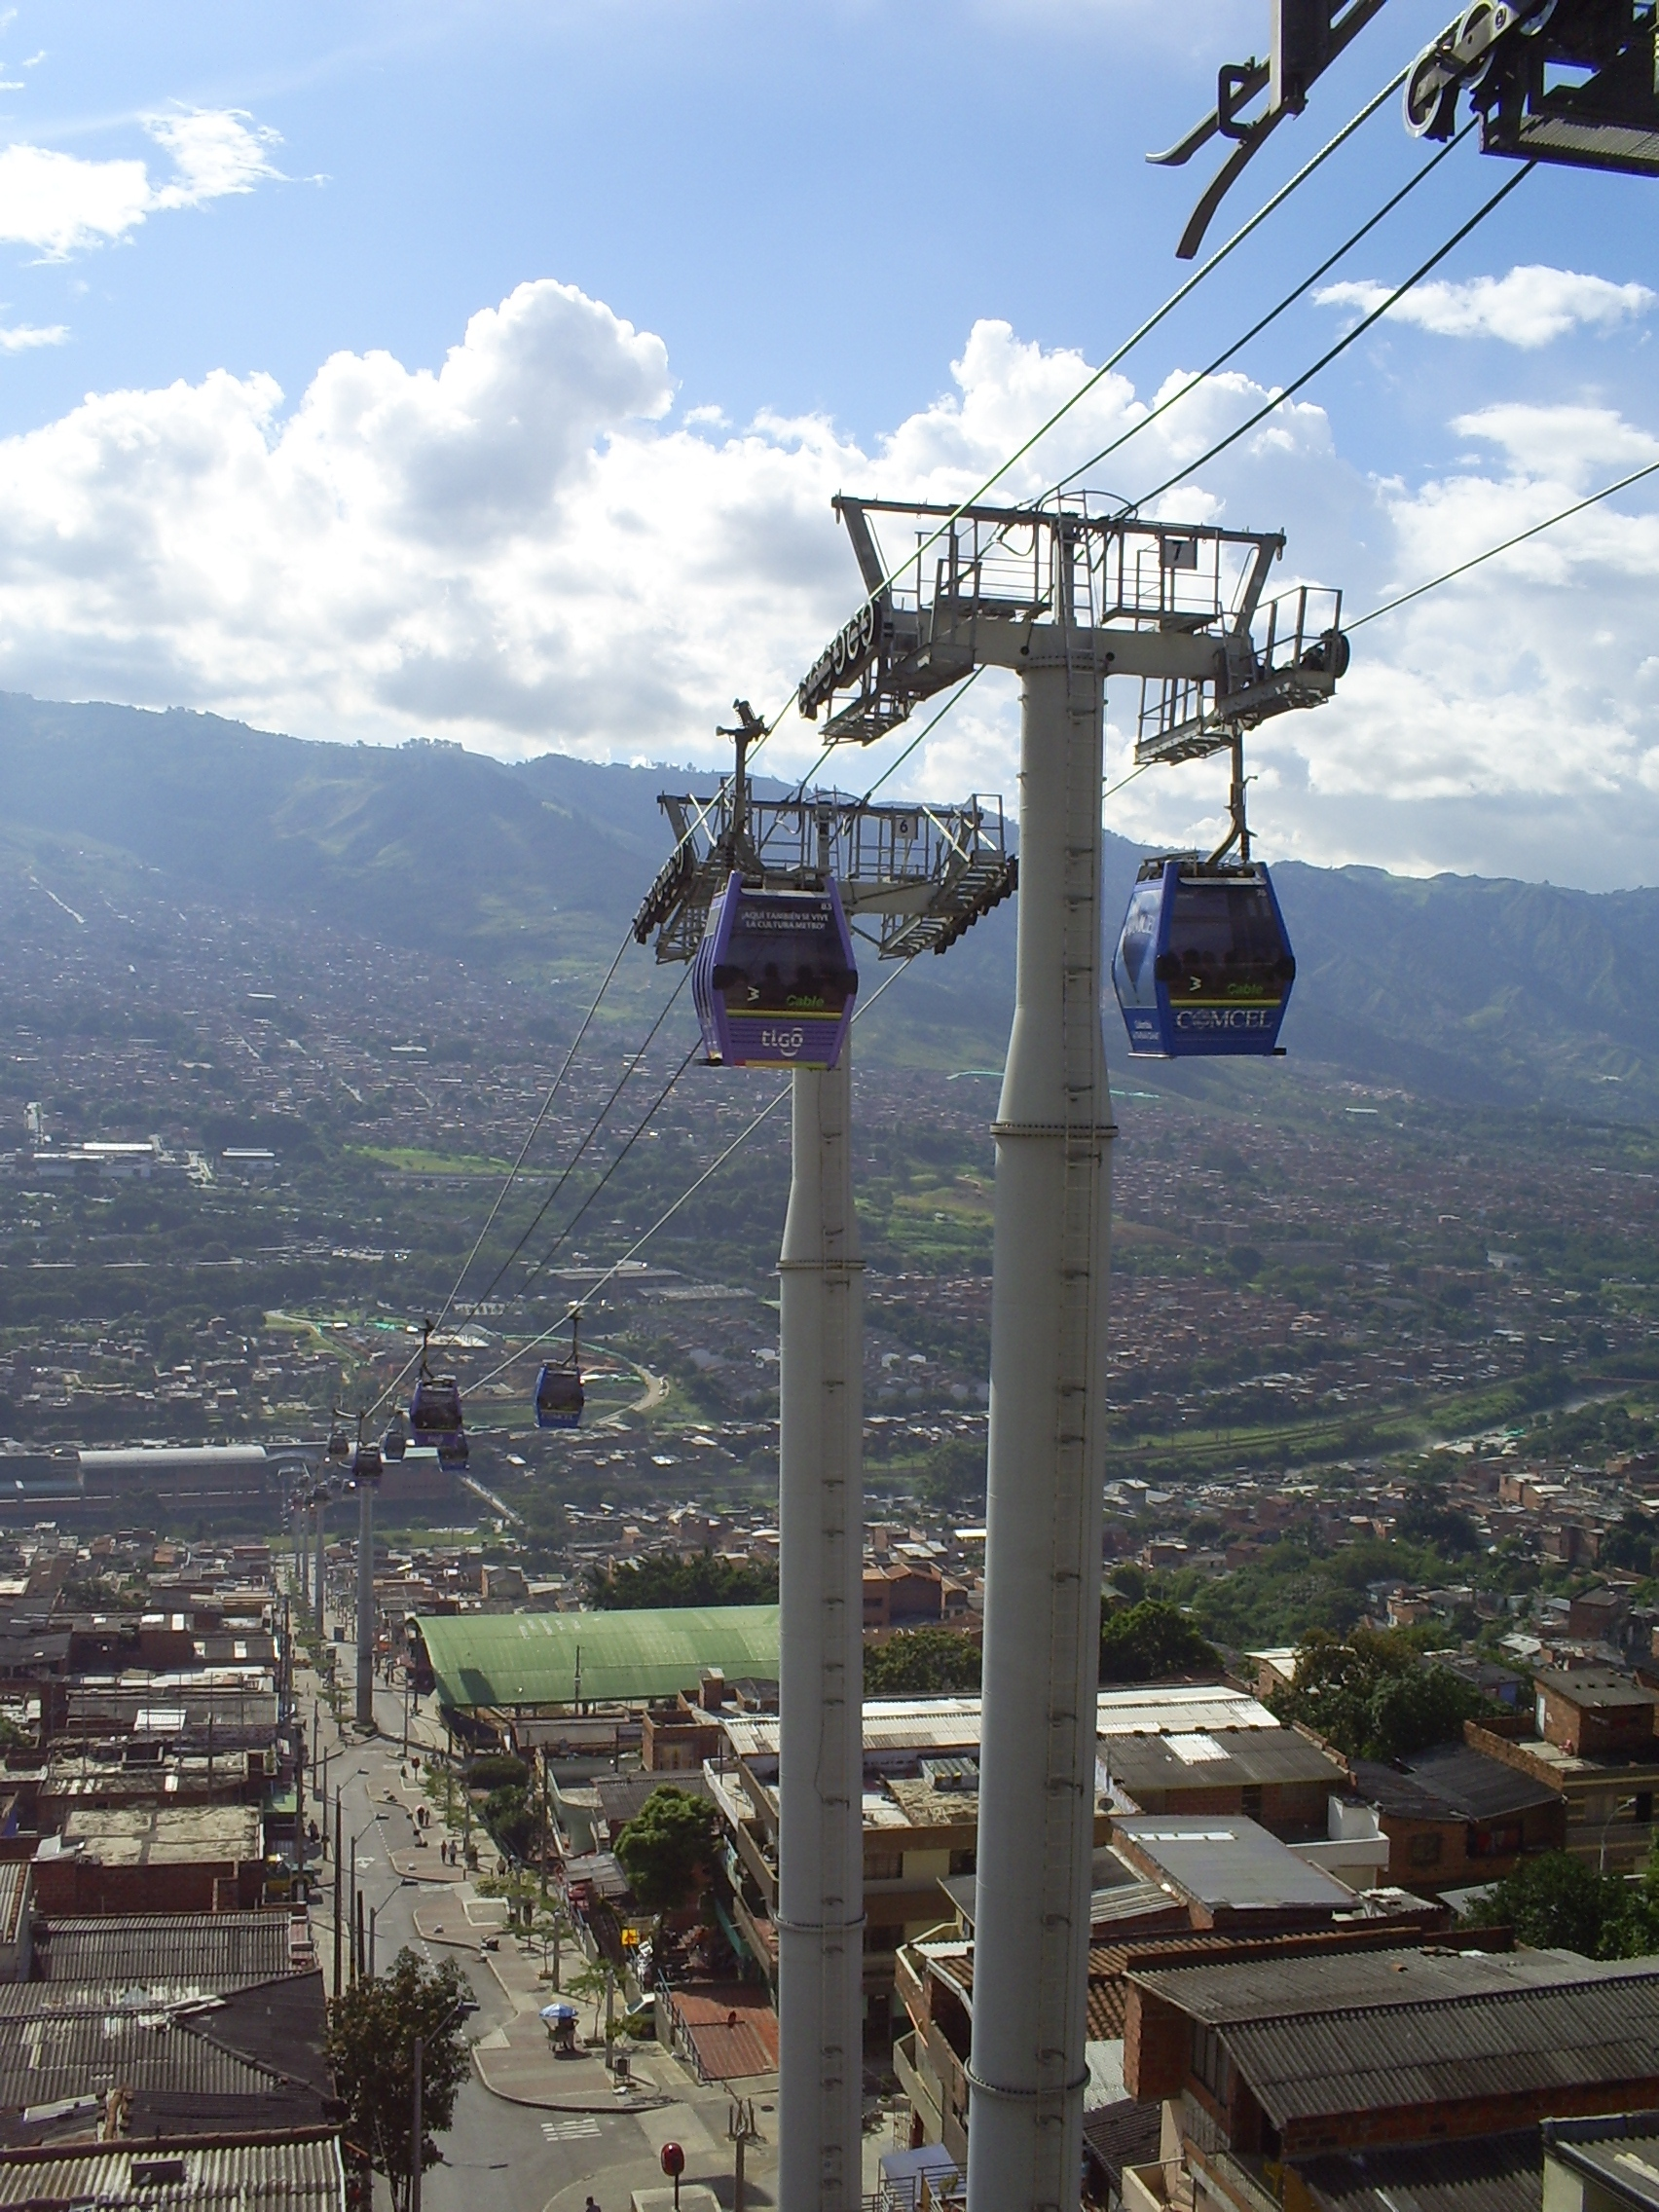 The Medellin MetroCable